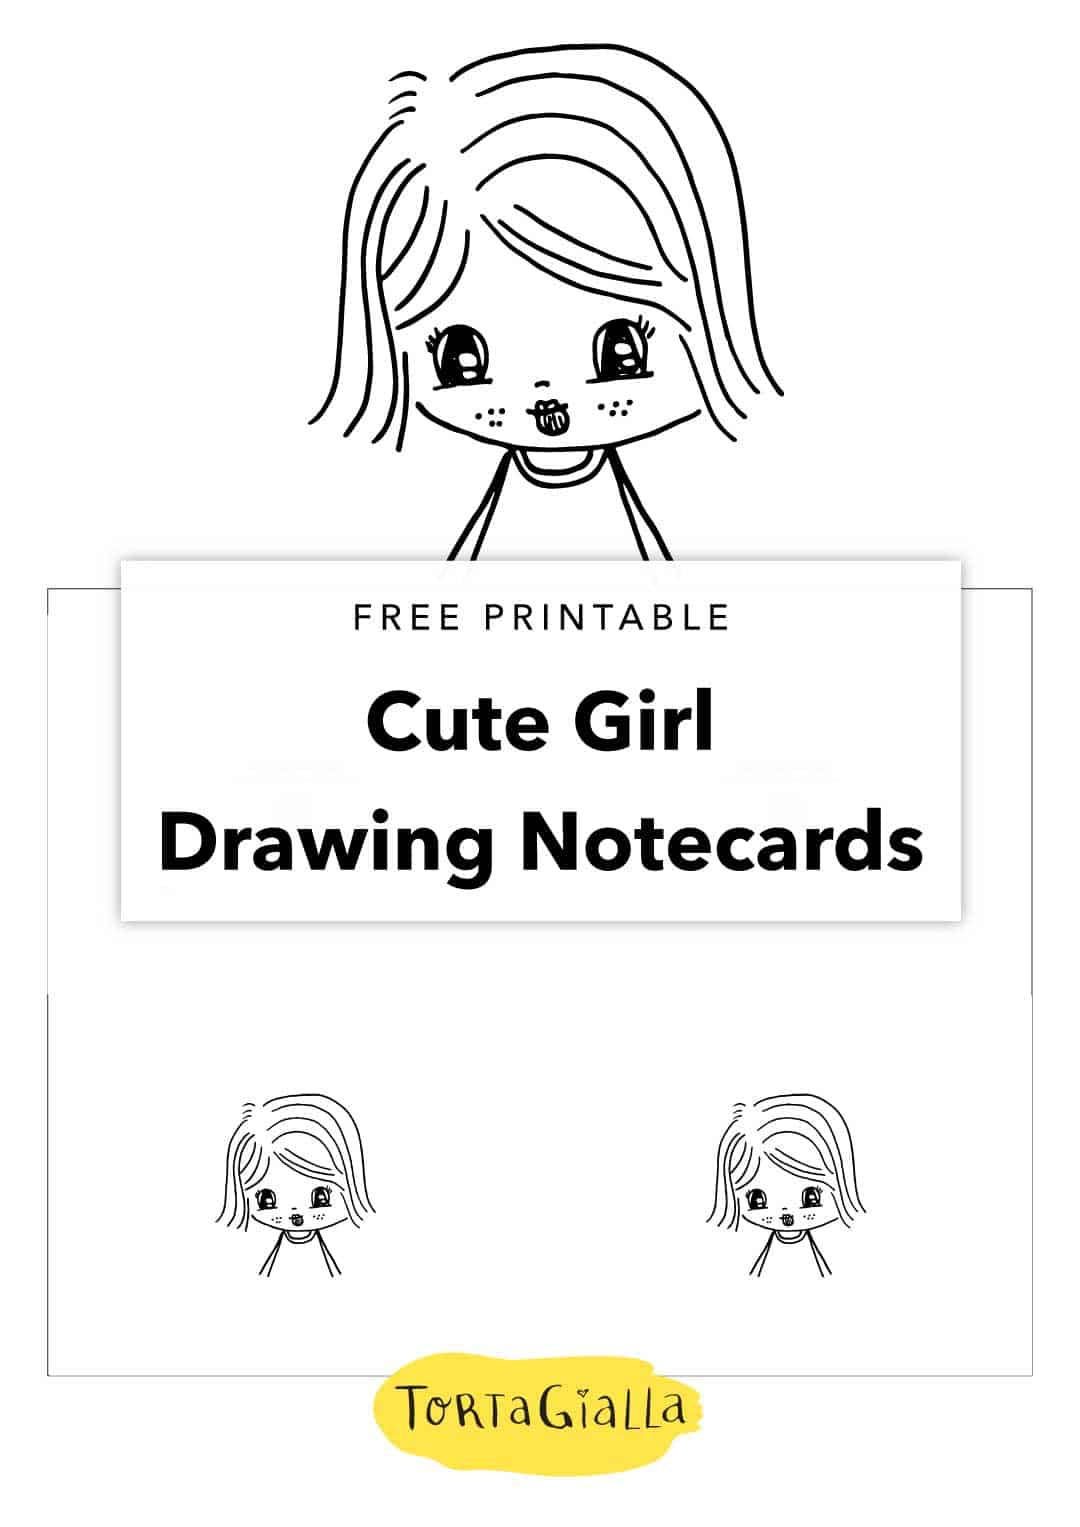 Free printable cards - Cute Girl drawing design for notecards